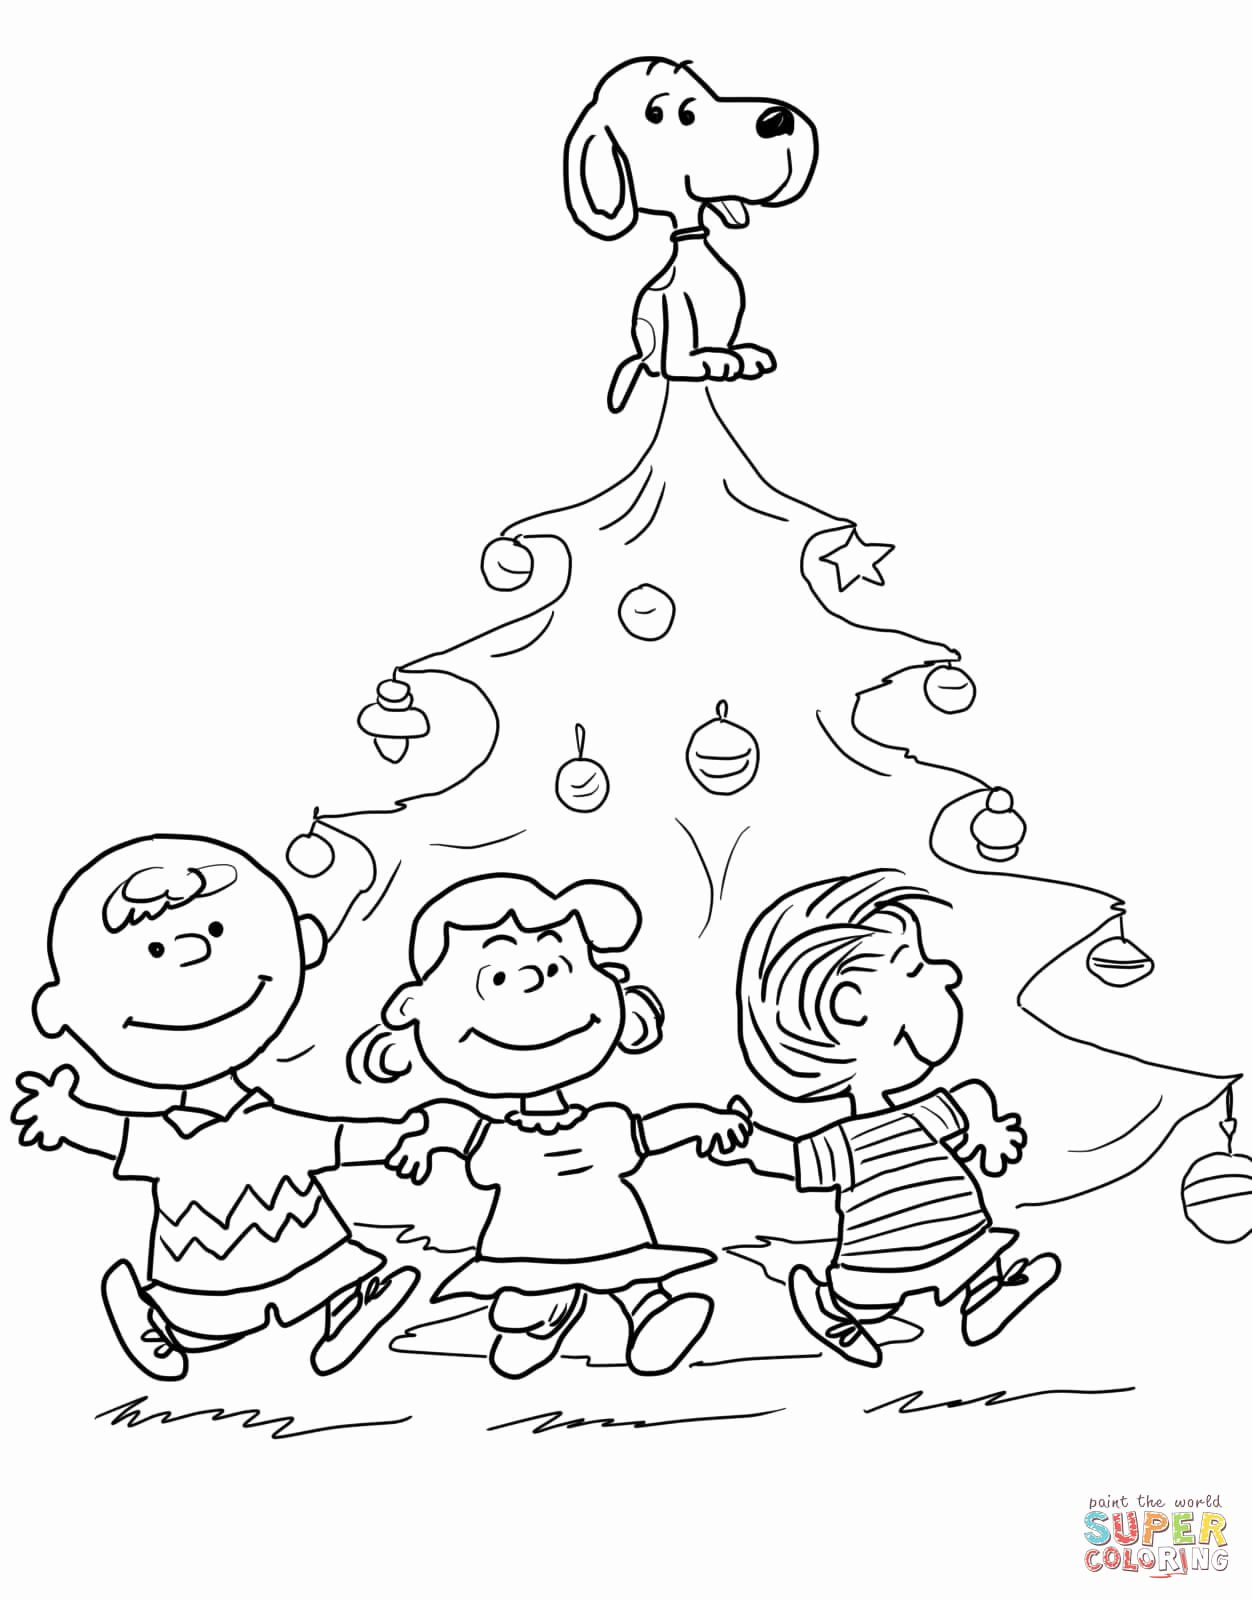 A Charlie Brown Thanksgiving Coloring Pages Awesome Charlie Brown Thanksgiving In 2020 Halloween Coloring Pages Christmas Coloring Sheets Christmas Tree Coloring Page